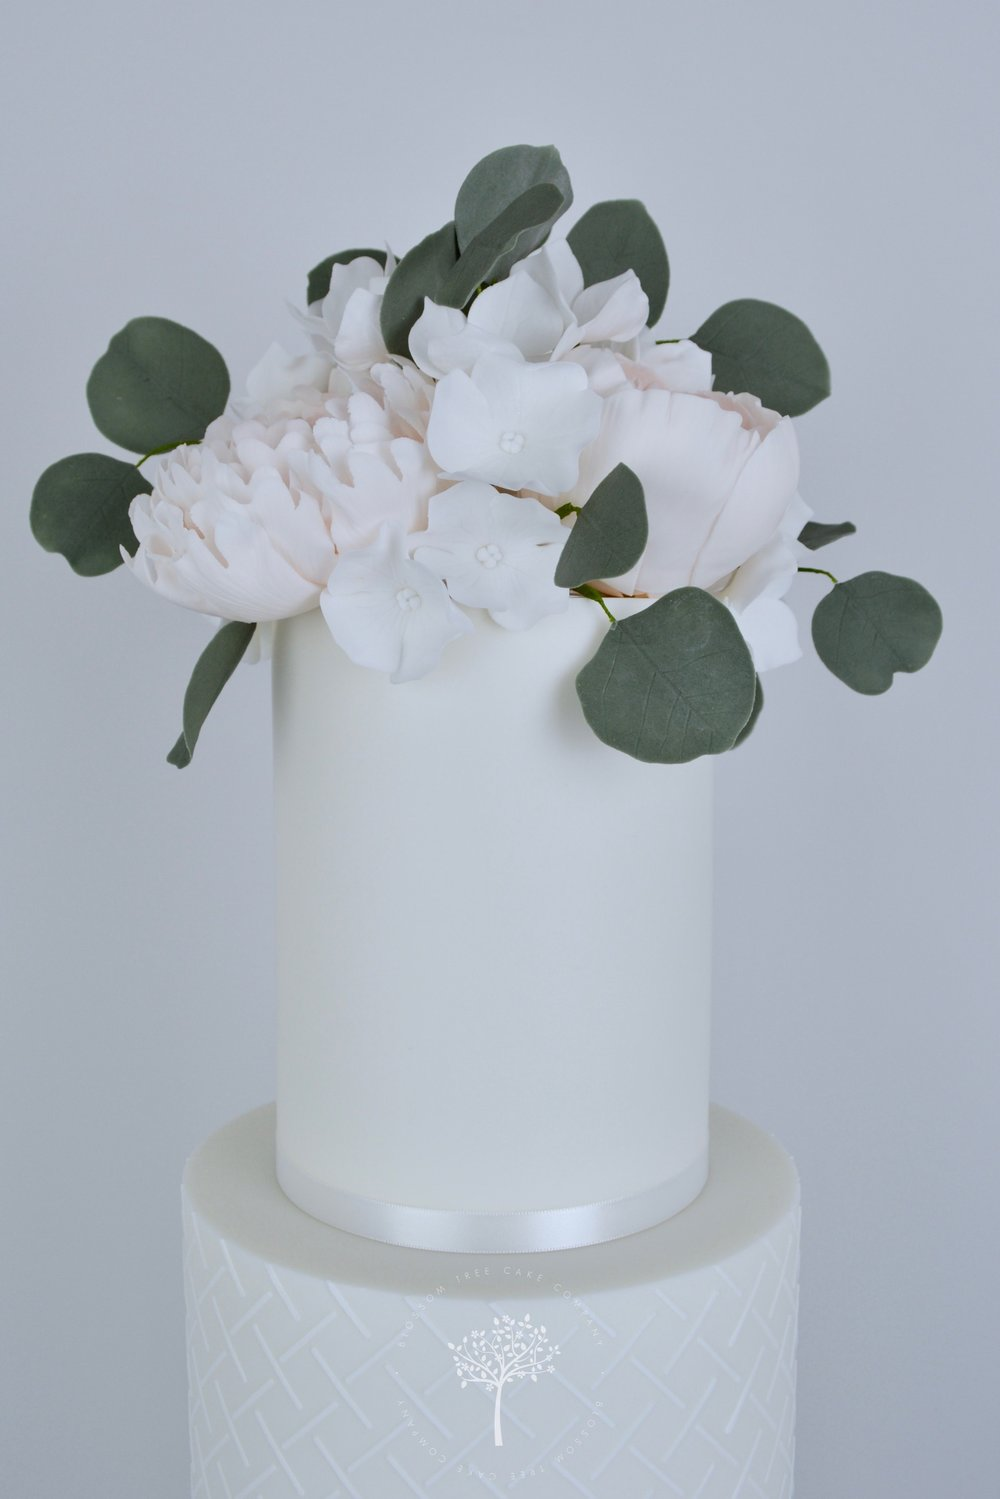 Peony and Magnolia Wedding Cake by Blossom Tree Cake Company Harrogate North Yorkshire - top sugar flowers.jpg